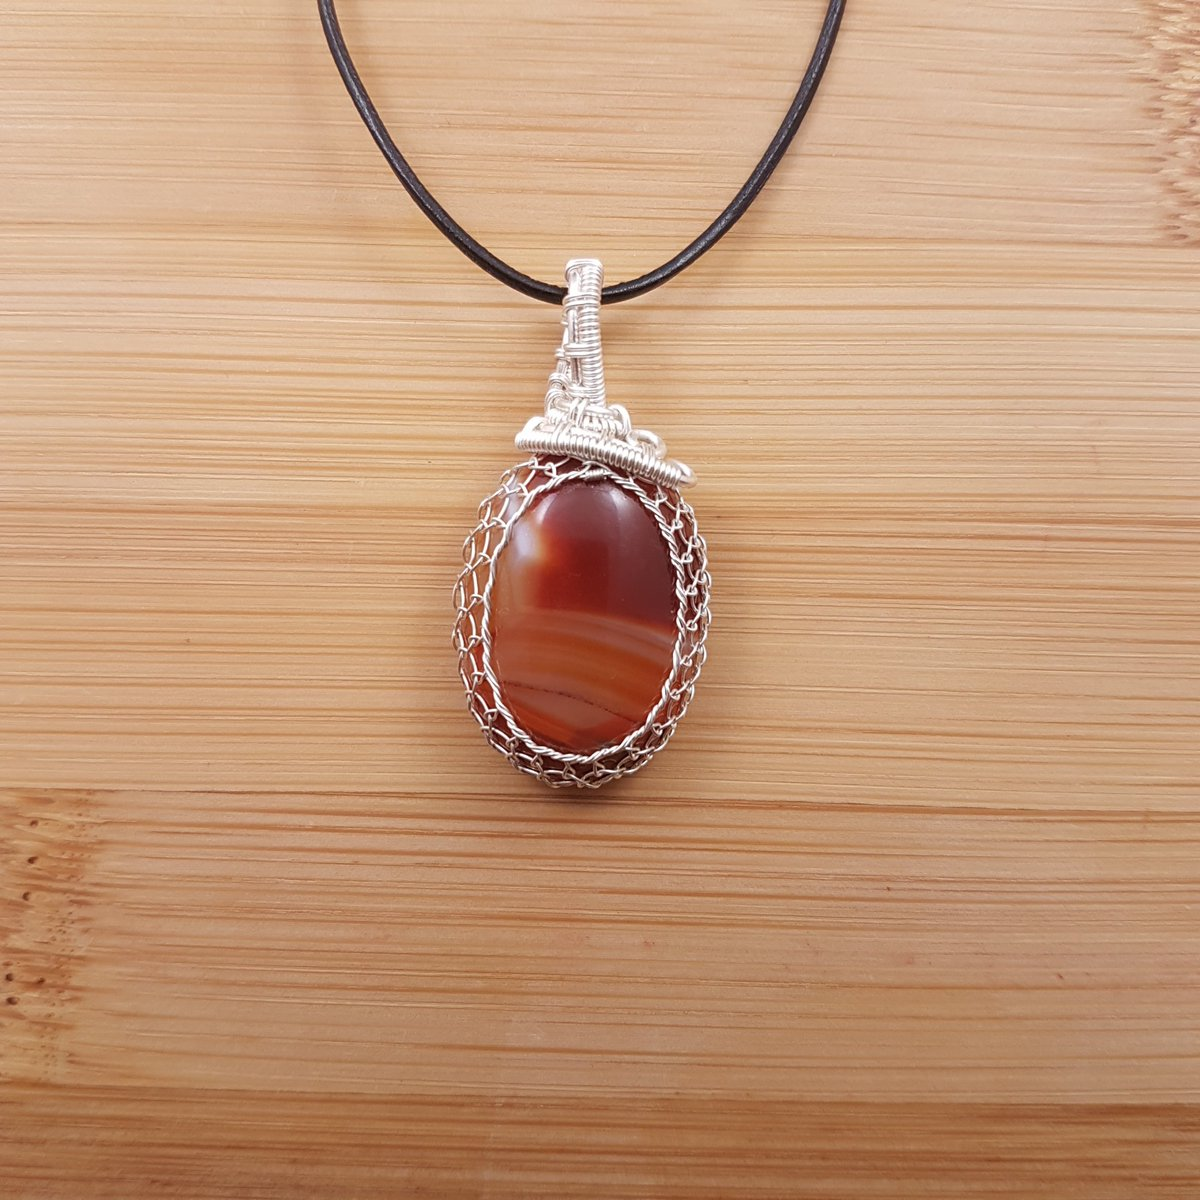 Orange Brazilian agate oval pendant wrapped in silver wire | Etsy